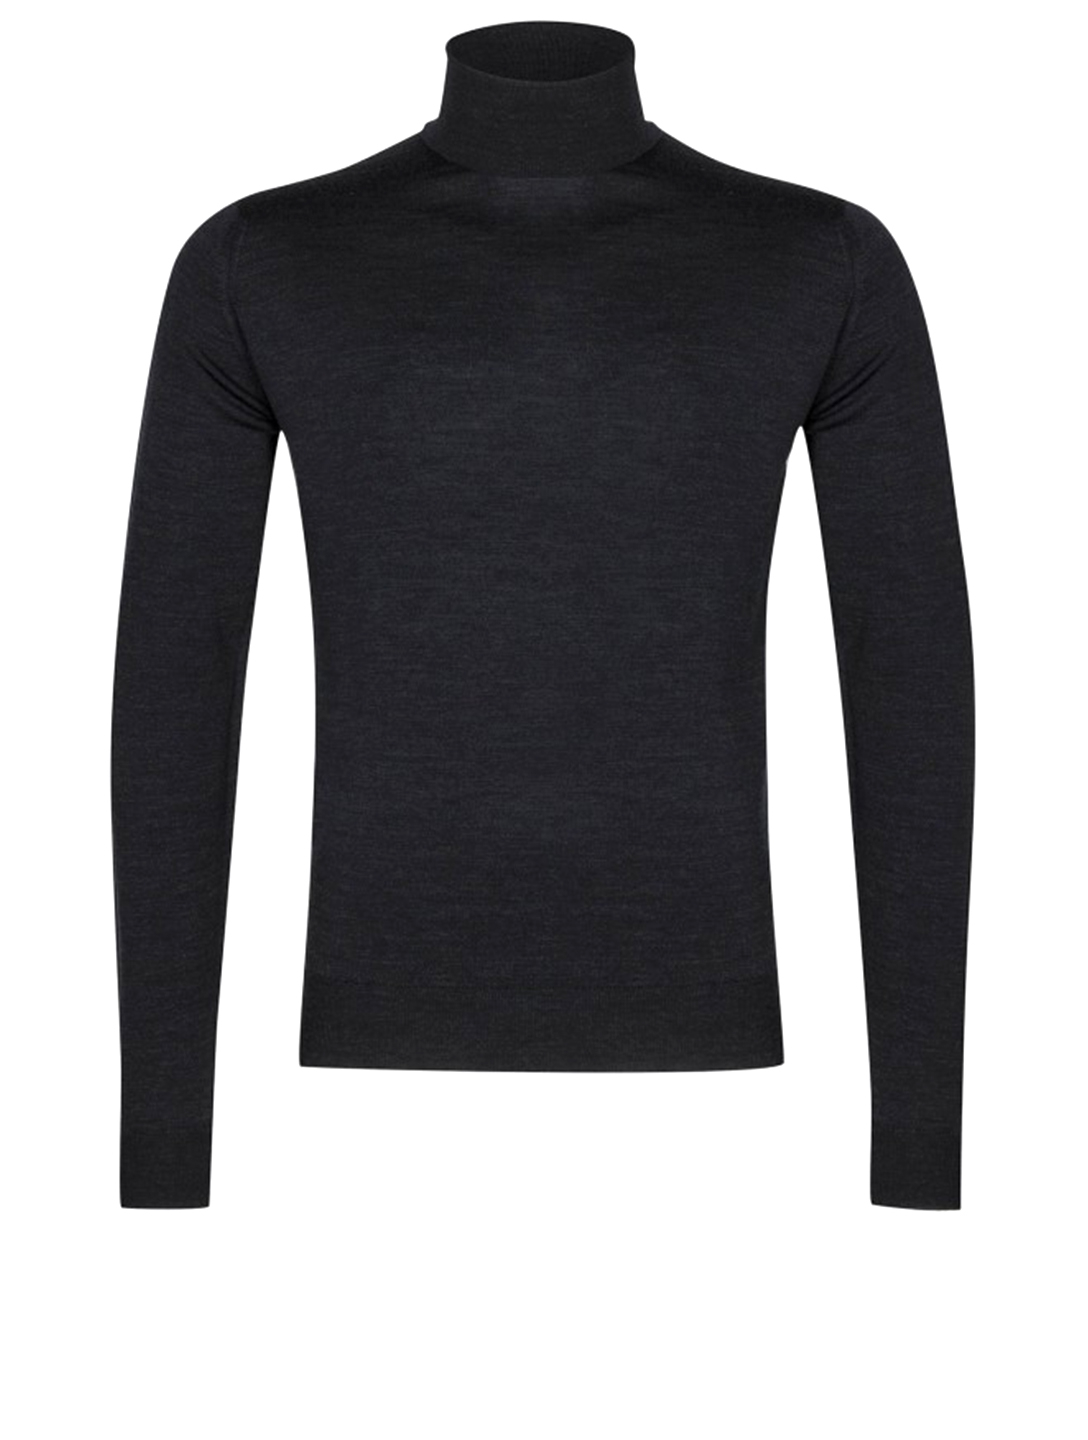 JOHN SMEDLEY Cherwell Wool Turtleneck Sweater Men's Black